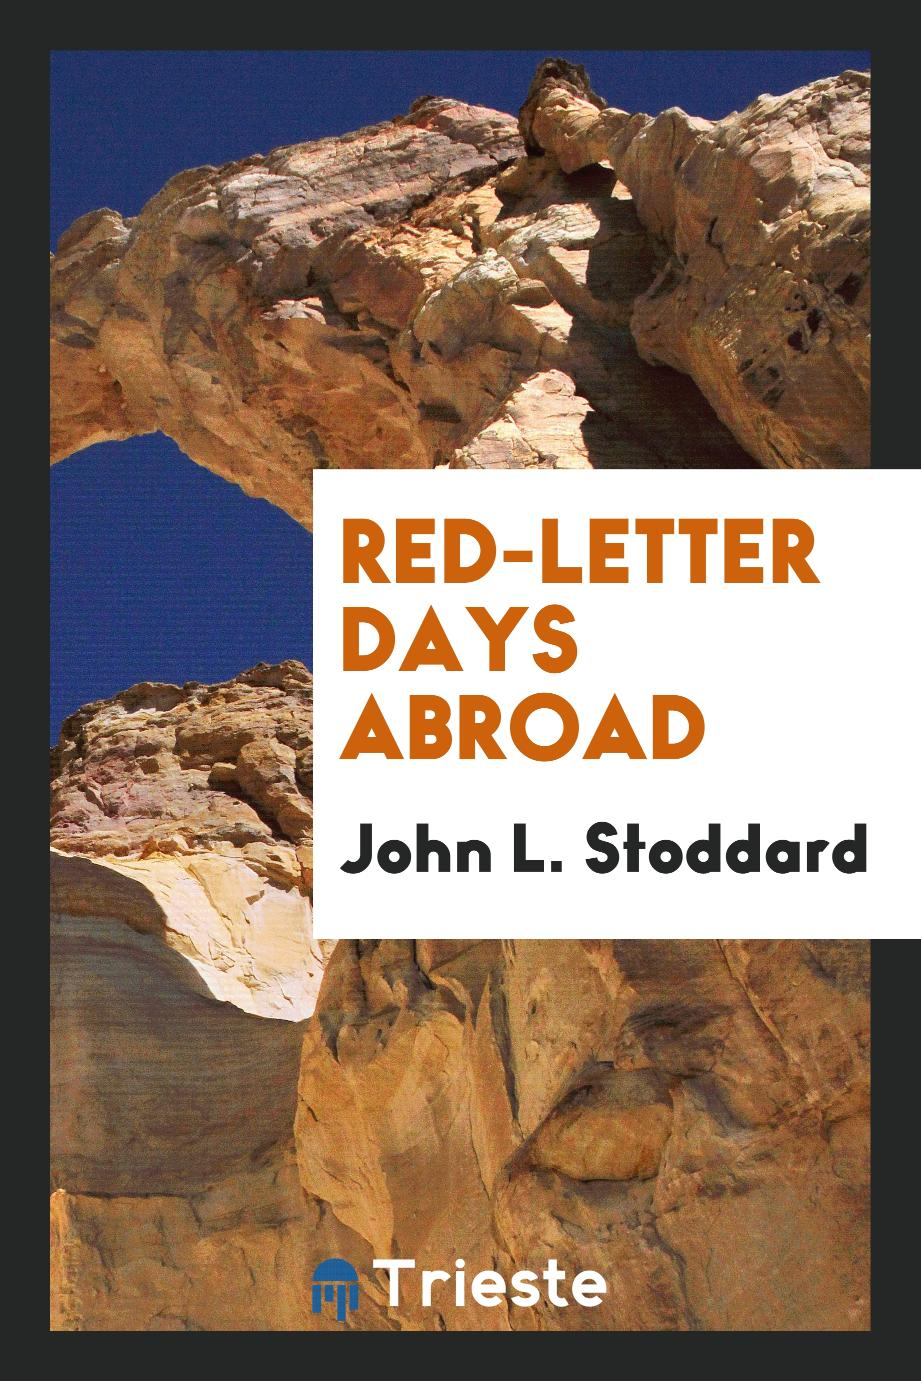 John L. Stoddard - Red-letter days abroad